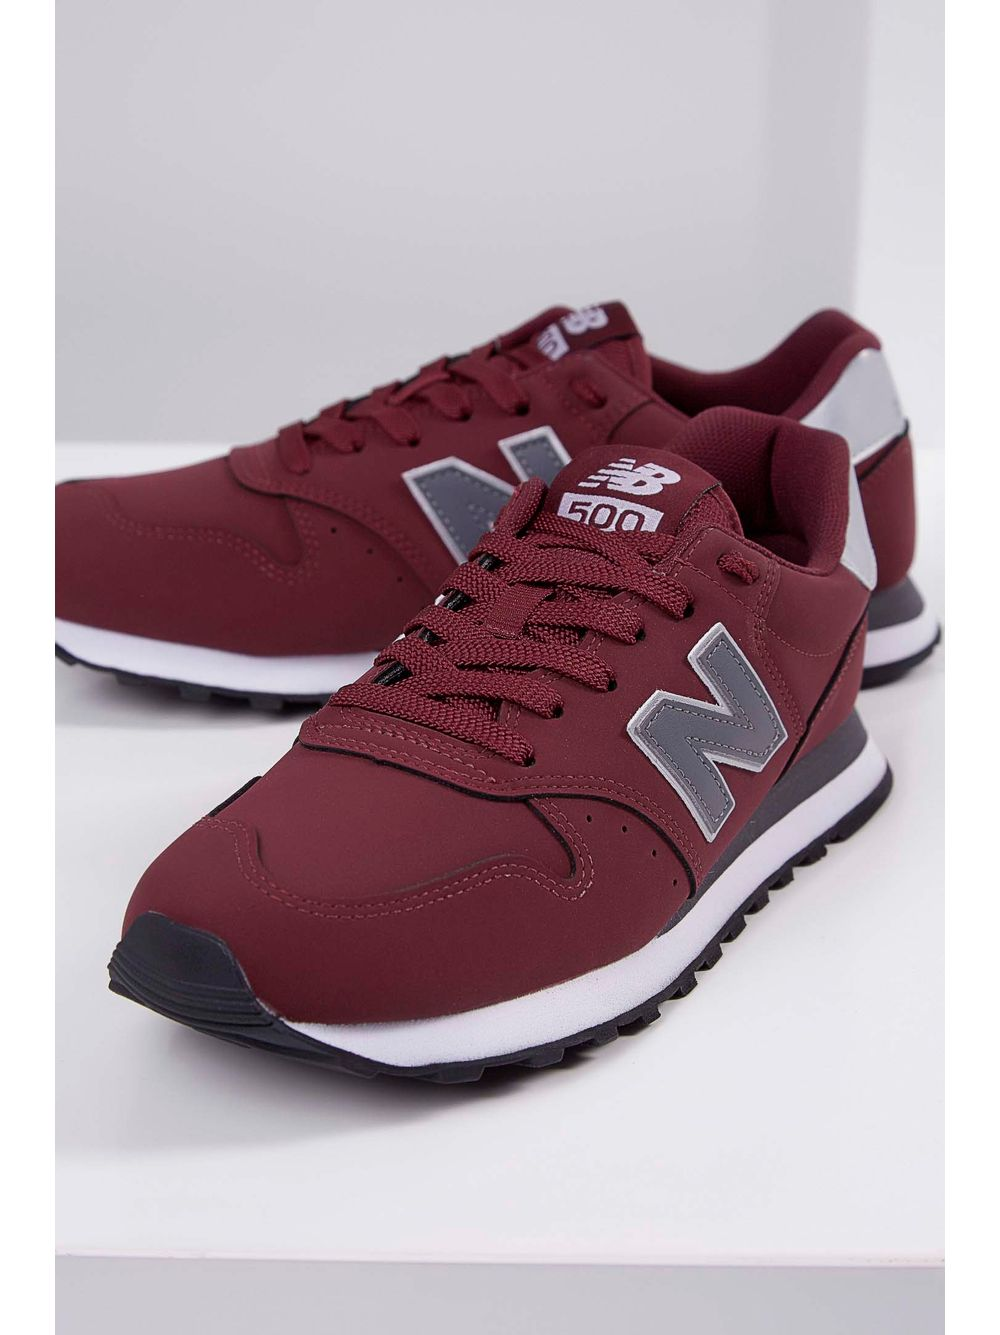 difícil Rizado escena  new balance 500 bordo, OFF 75%,Buy!